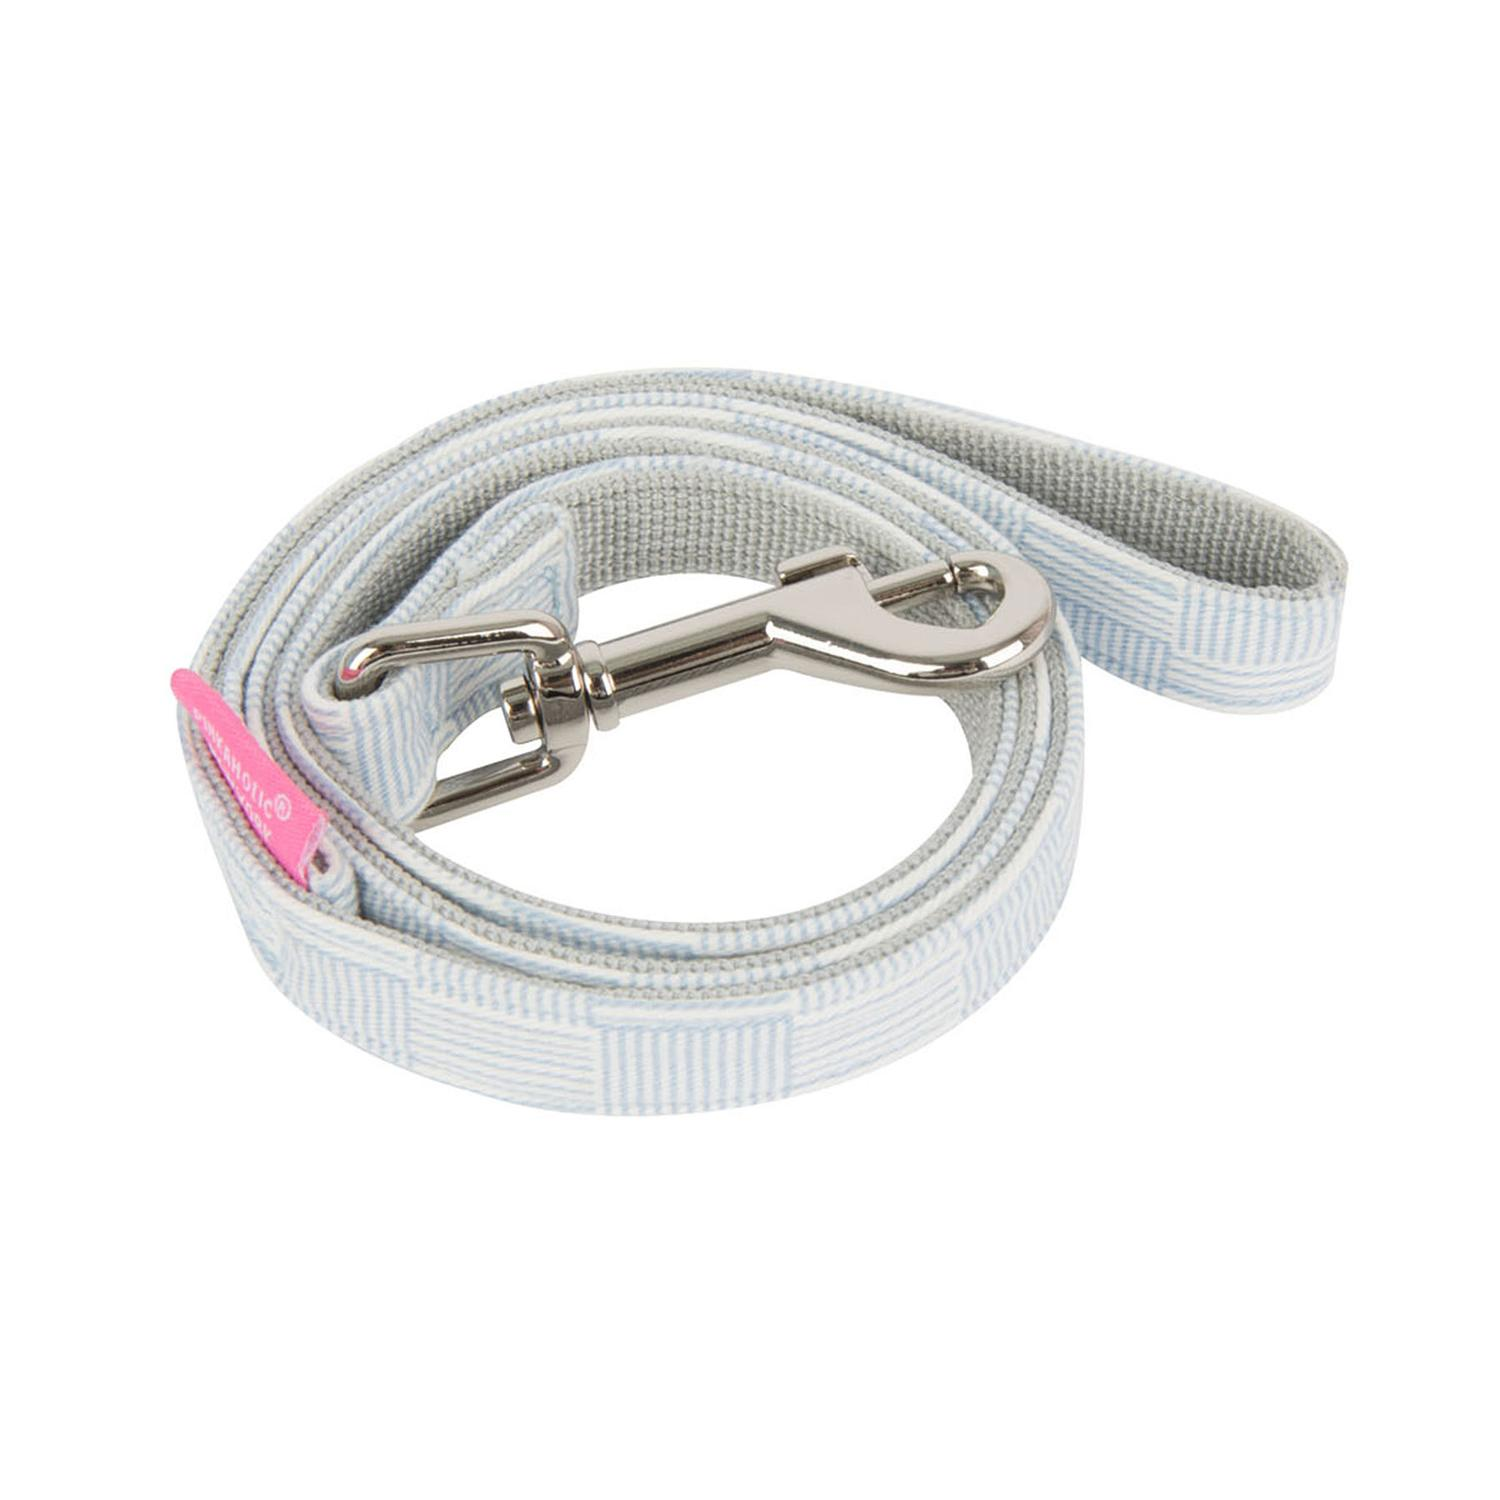 Clement Dog Leash by Pinkaholic - Light Blue